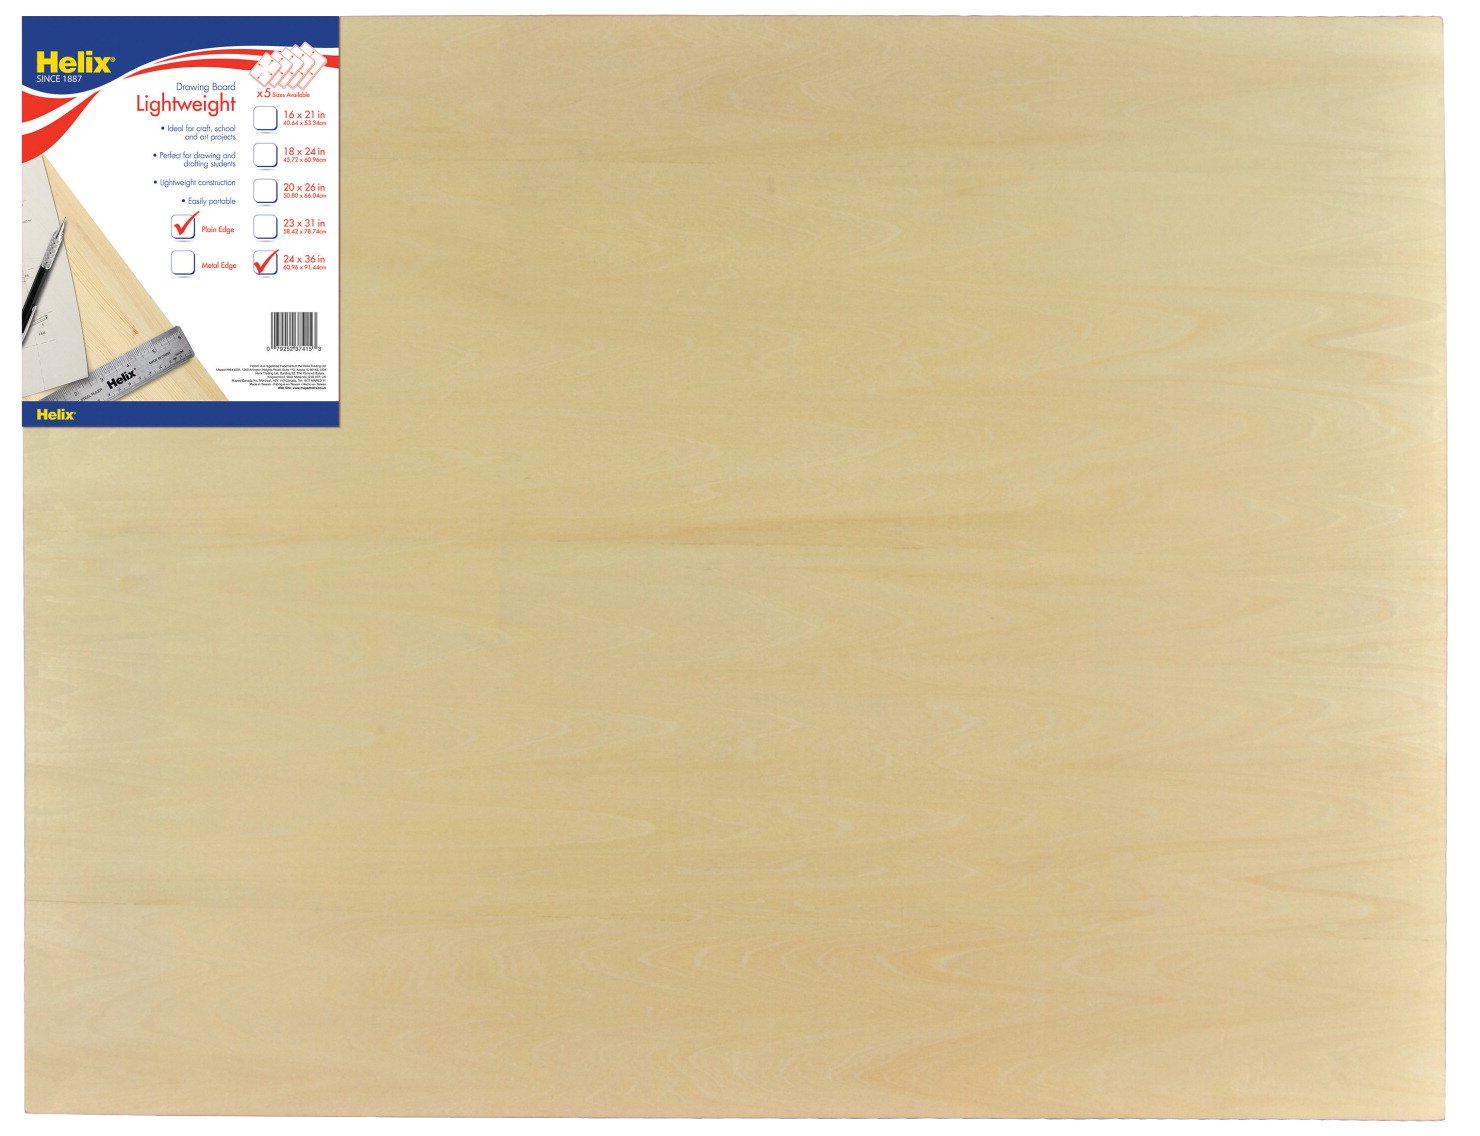 Helix Drawing Board, 24 Inch x 36 Inch, Plain Edge (37415) Maped Helix USA